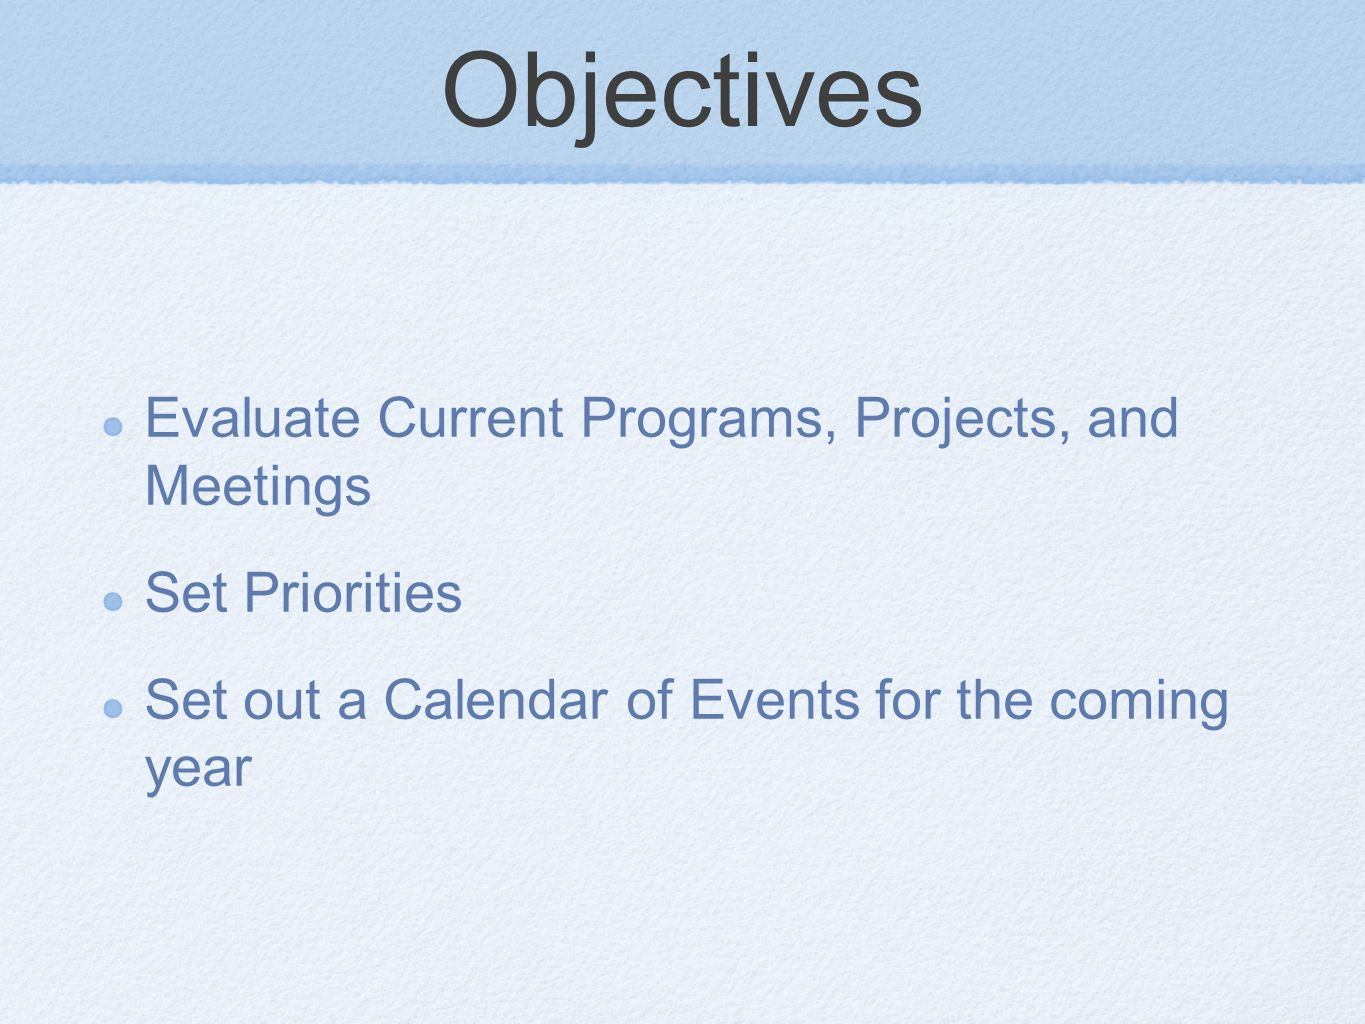 Objectives Evaluate Current Programs, Projects, and Meetings Set Priorities Set out a Calendar of Events for the coming year